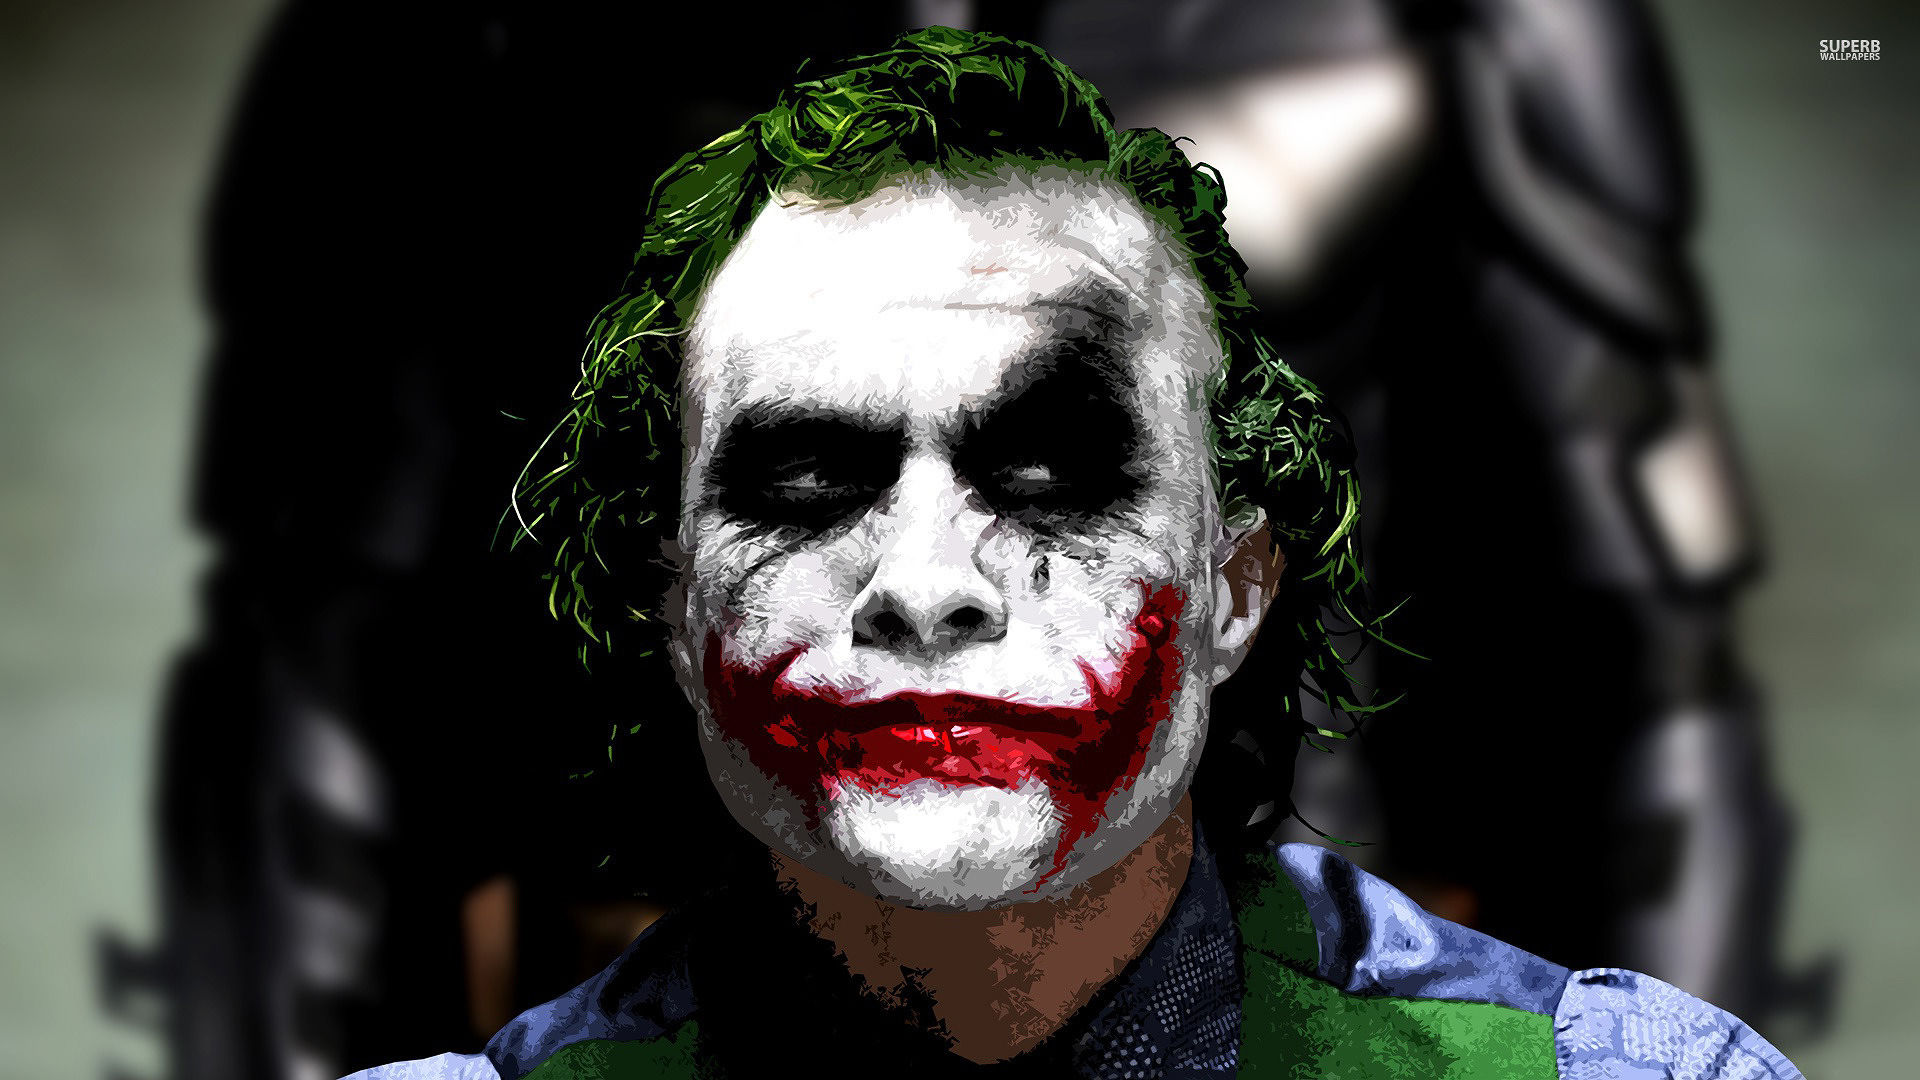 naurato why so serious let s put a smile on that face